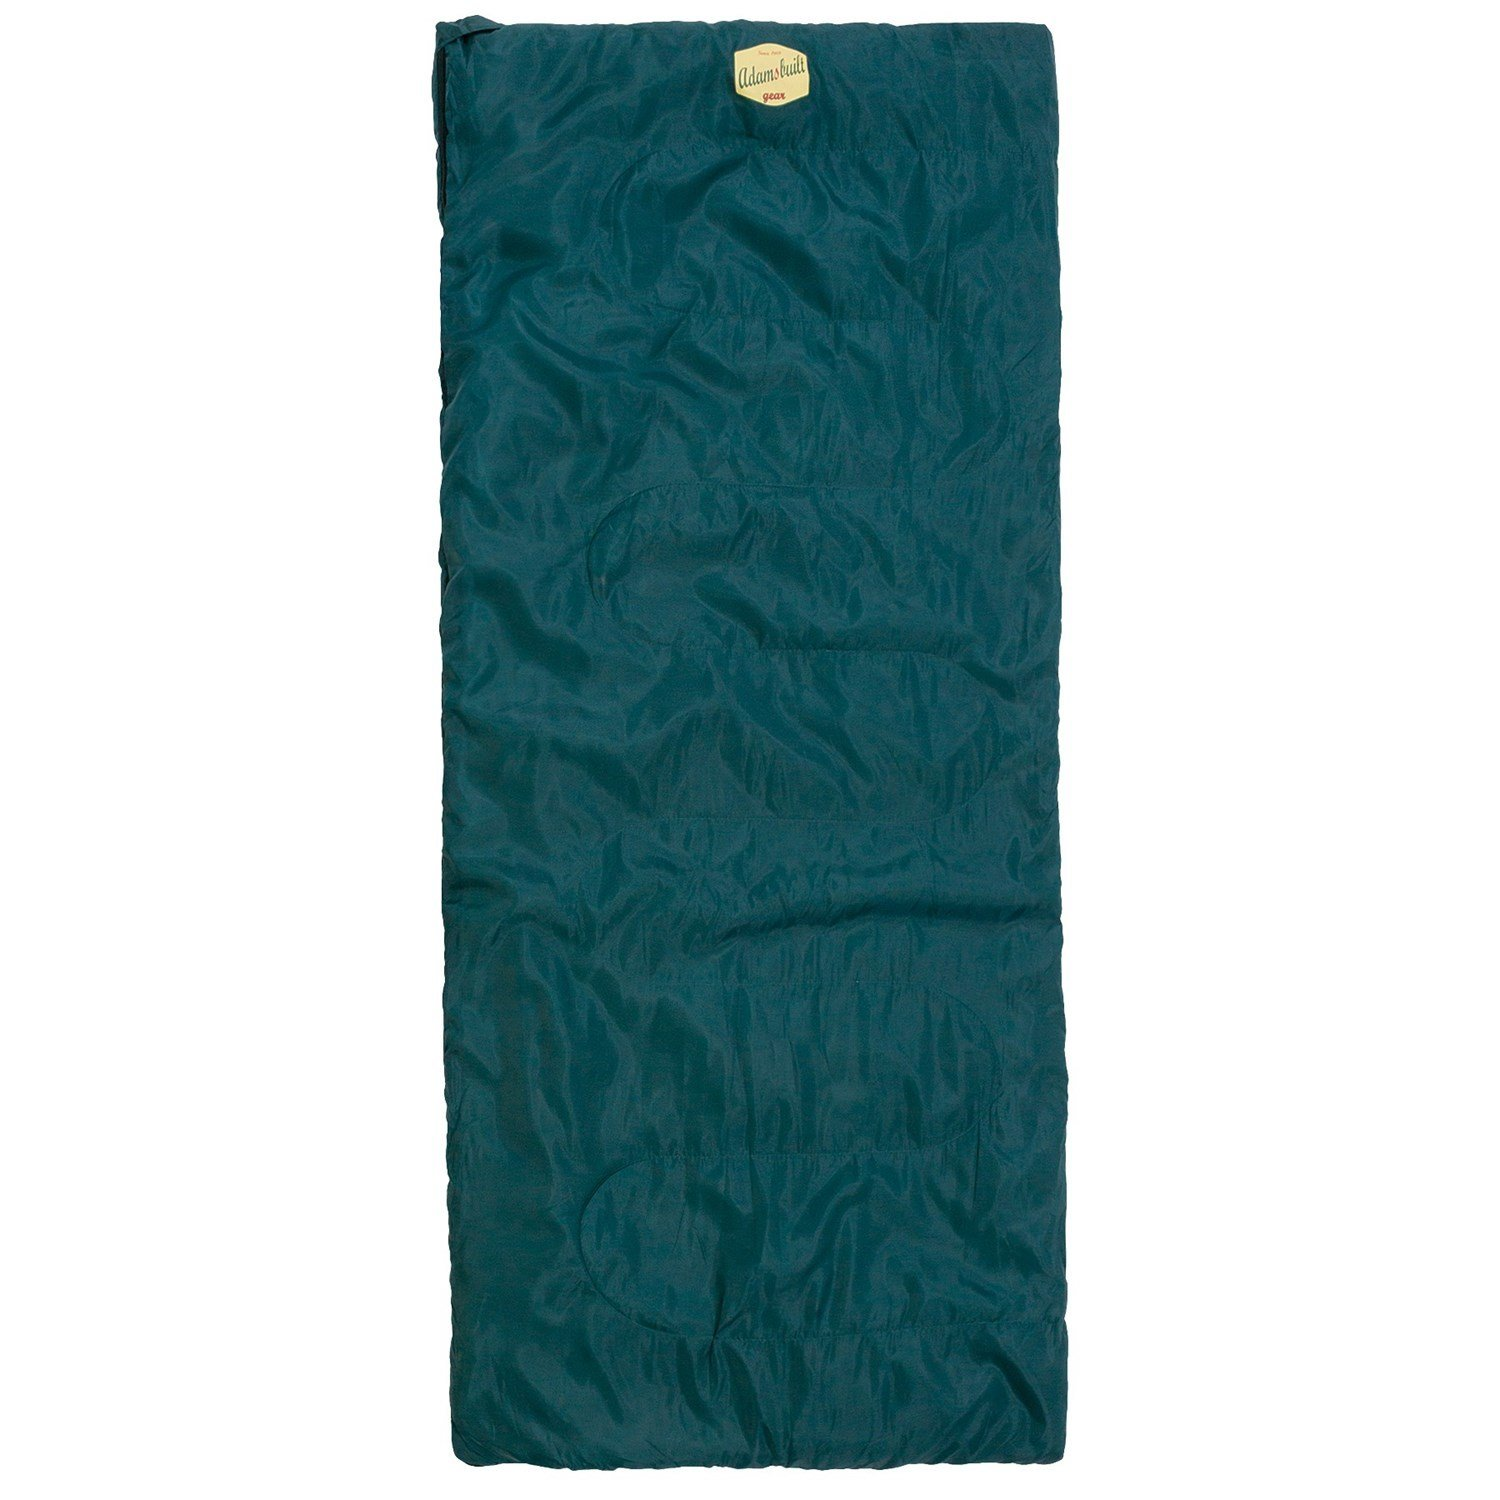 Adamsbuilt Jarbridge Rectangular Summer Sleeping bag - 908  grams